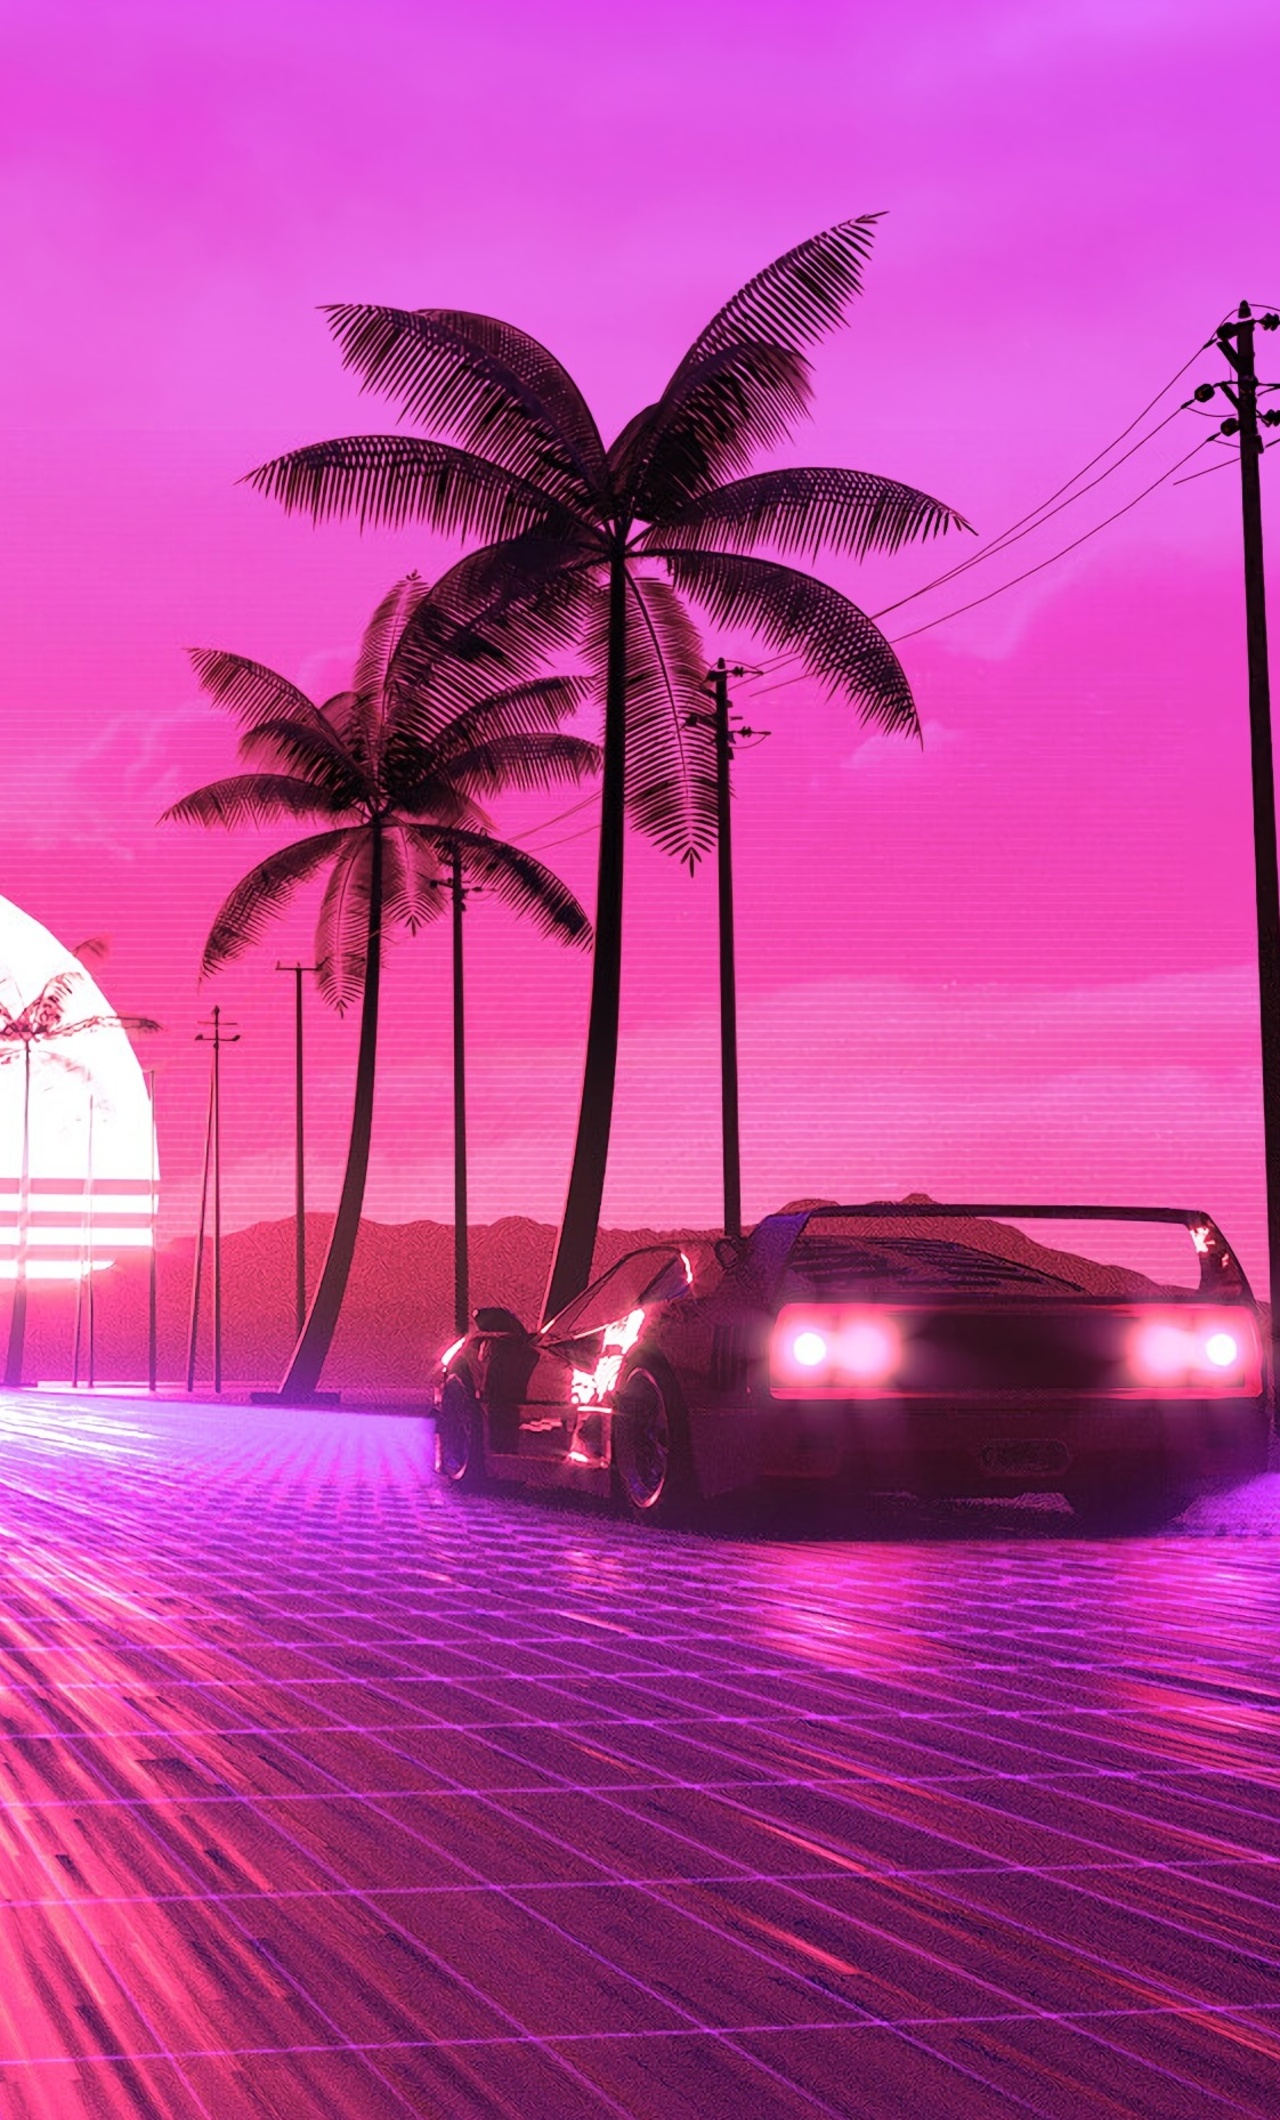 1280x2120 Retro 80s Ride Iphone 6 Hd 4k Wallpapers Images